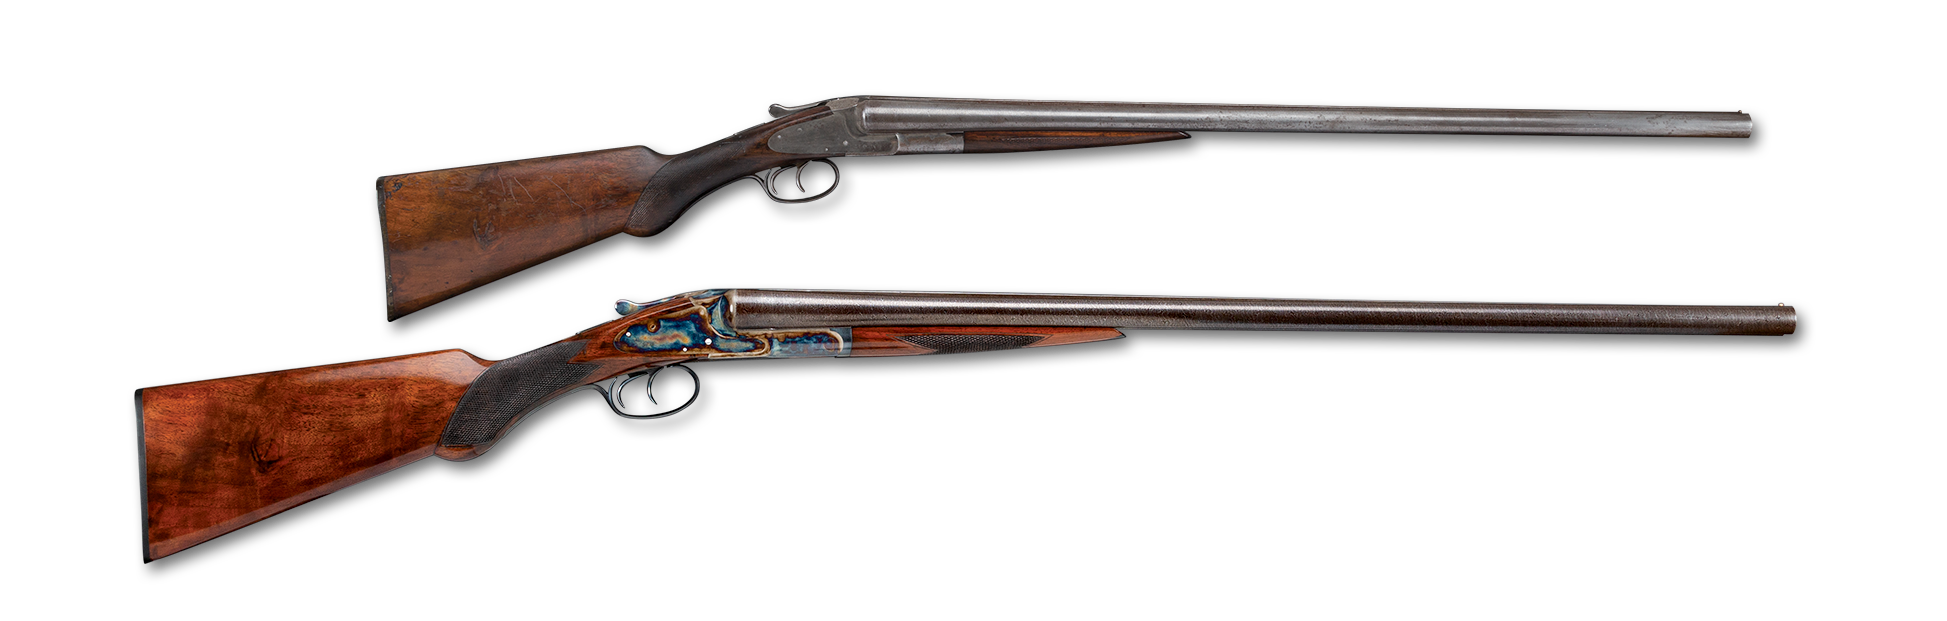 Before and after photos of a restored L.C. Smith 12 gauge shotgun, work by Turnbull Restoration of Bloomfield NY